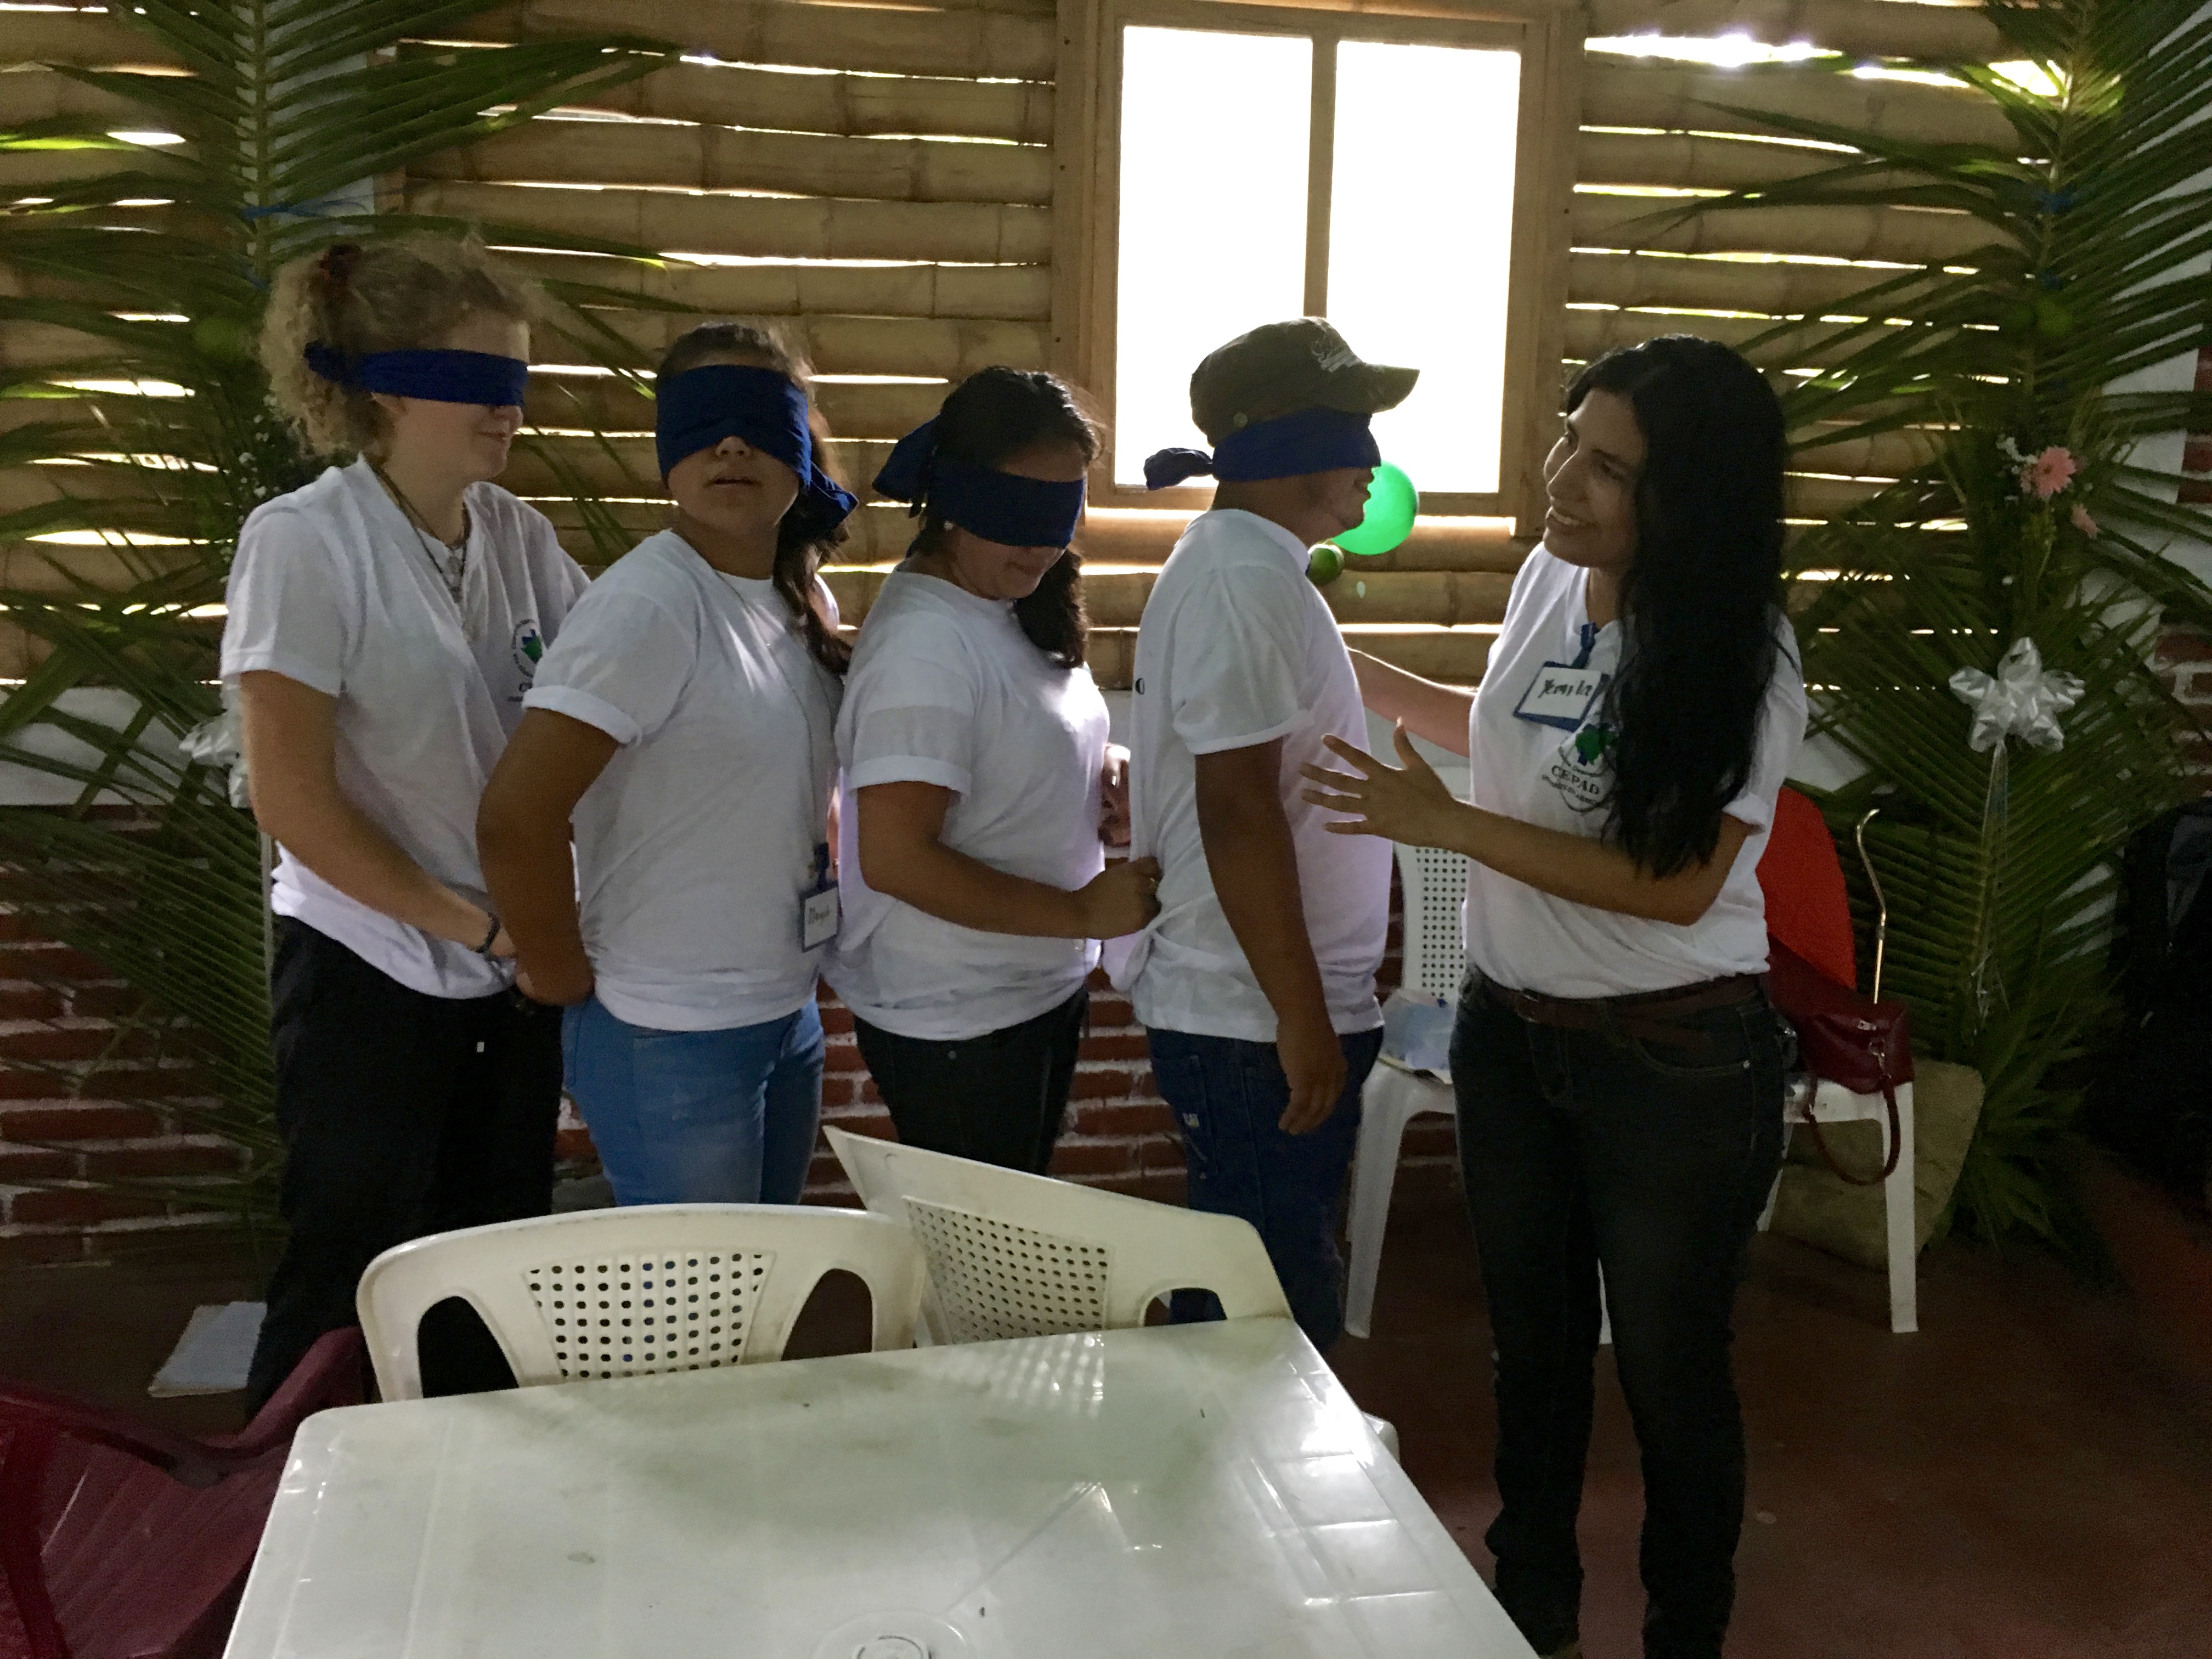 Yemila of CEPAD guides blindfolded participants through an obstacle course.